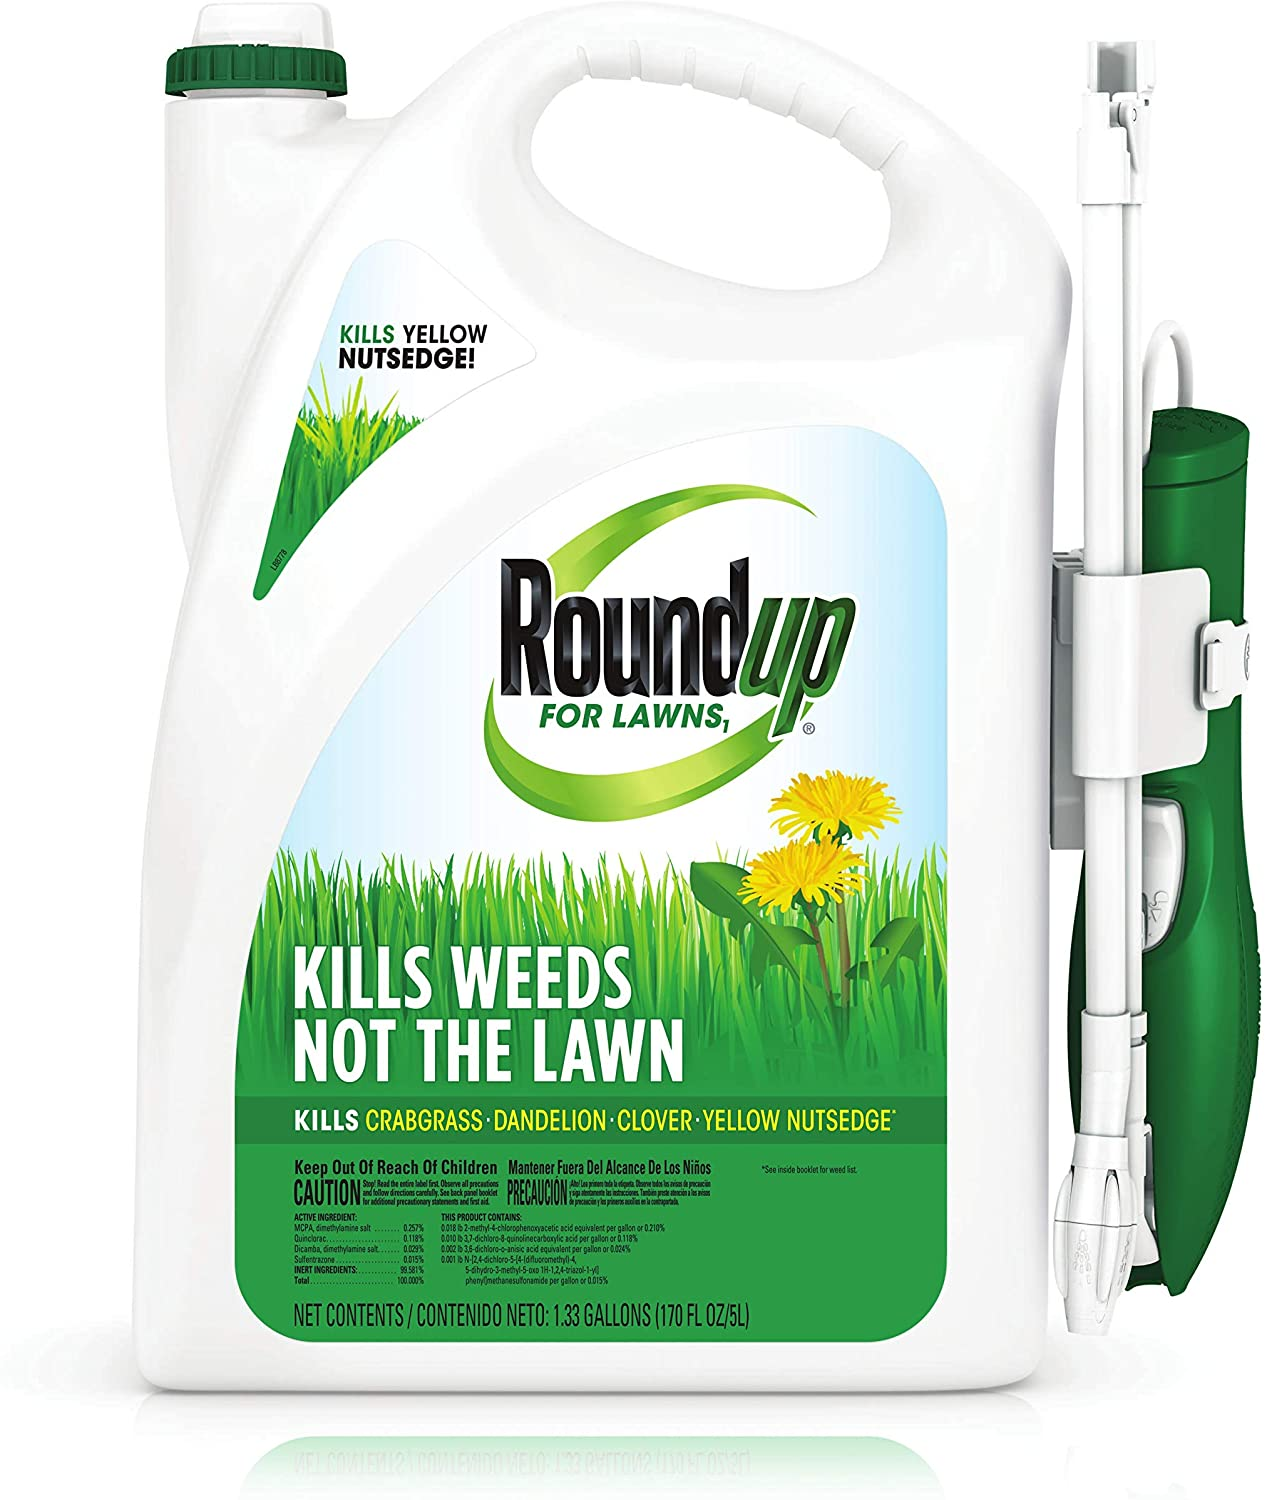 roundup for lawns for northern grasses weed killer bottle